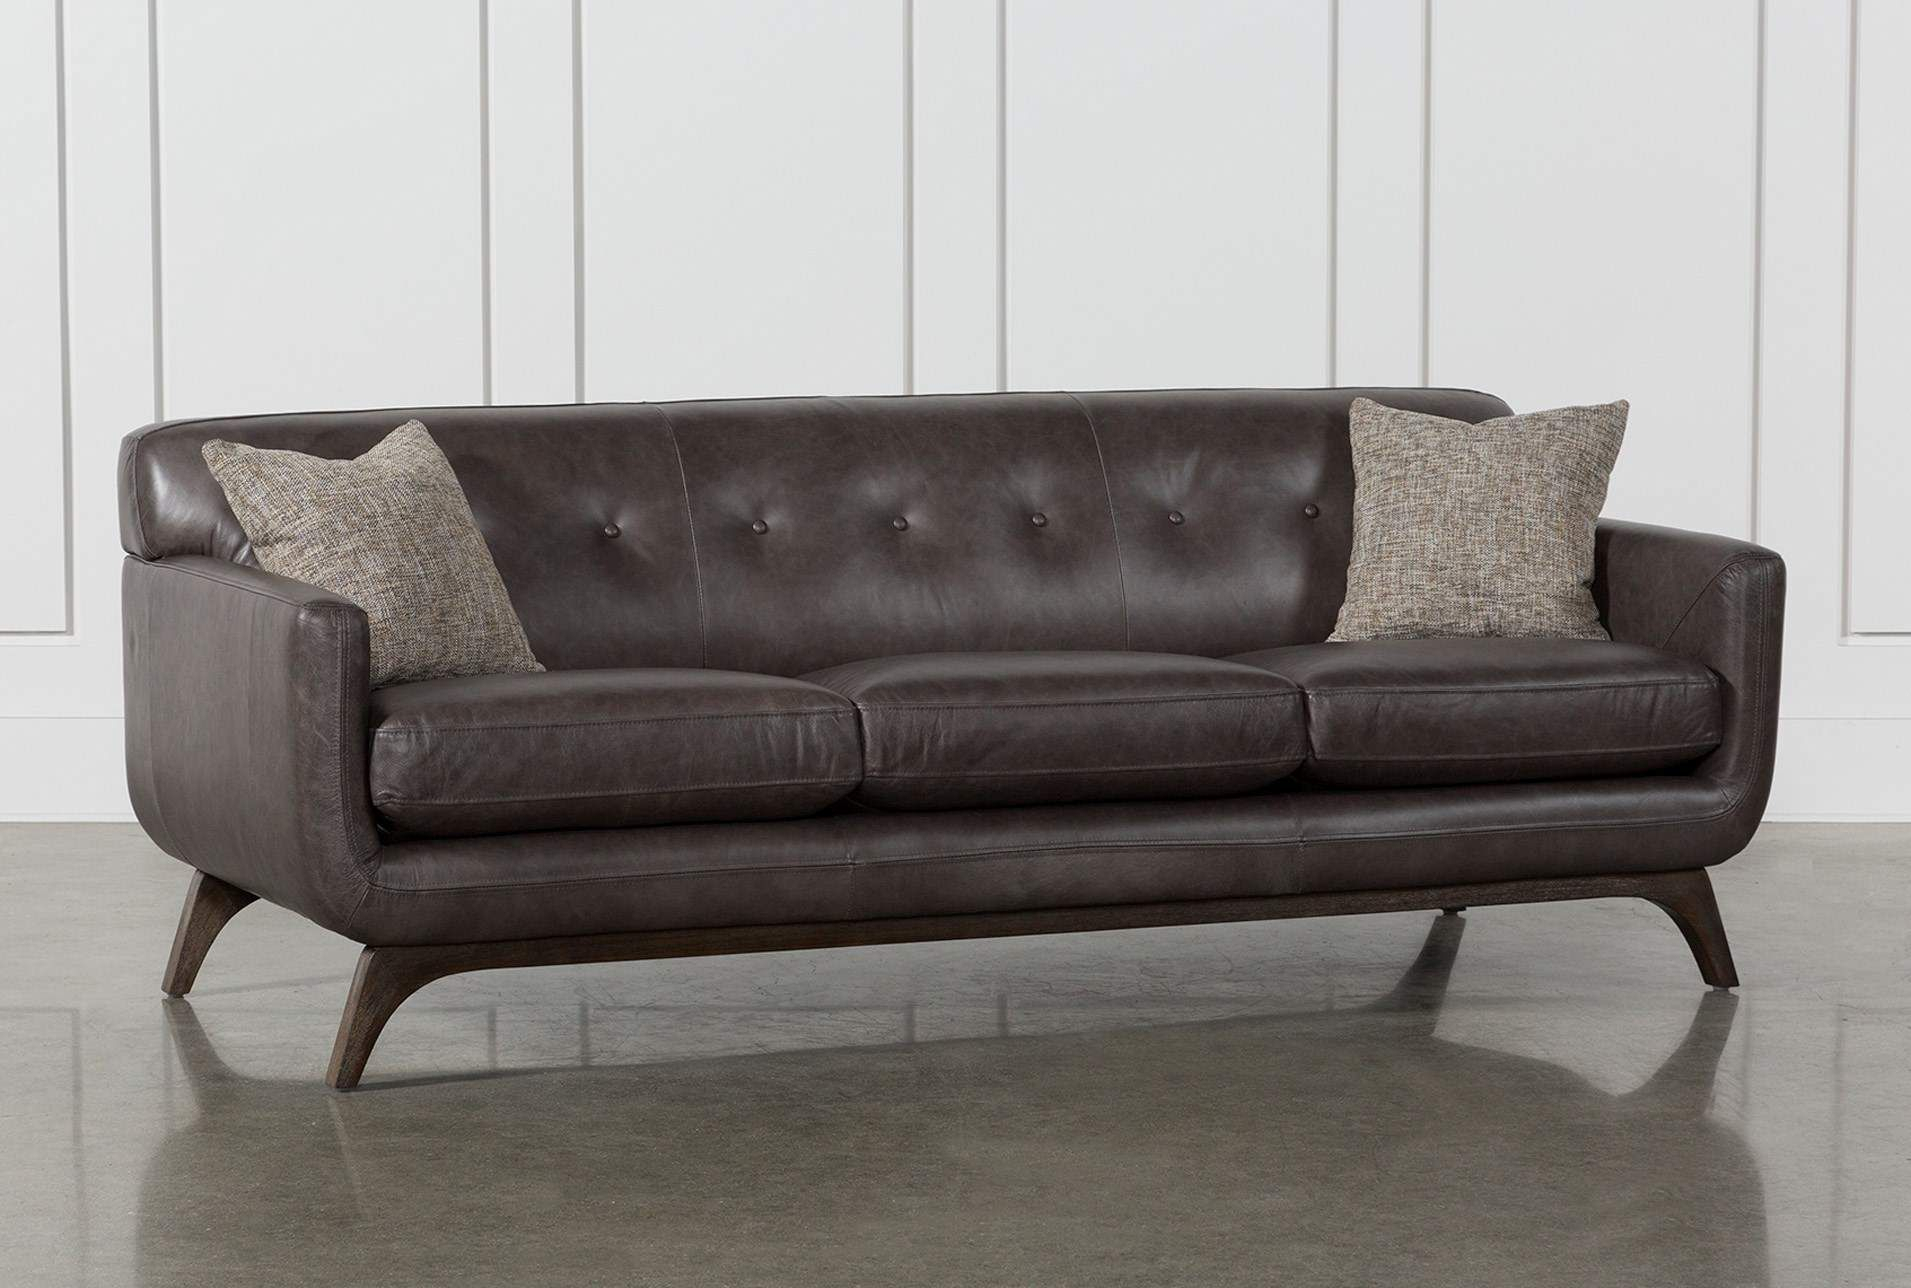 Cosette Leather Sofa In 2018 | Parkview | Pinterest | Sofa, Leather Intended For Matteo Arm Sofa Chairs By Nate Berkus And Jeremiah Brent (Image 4 of 25)